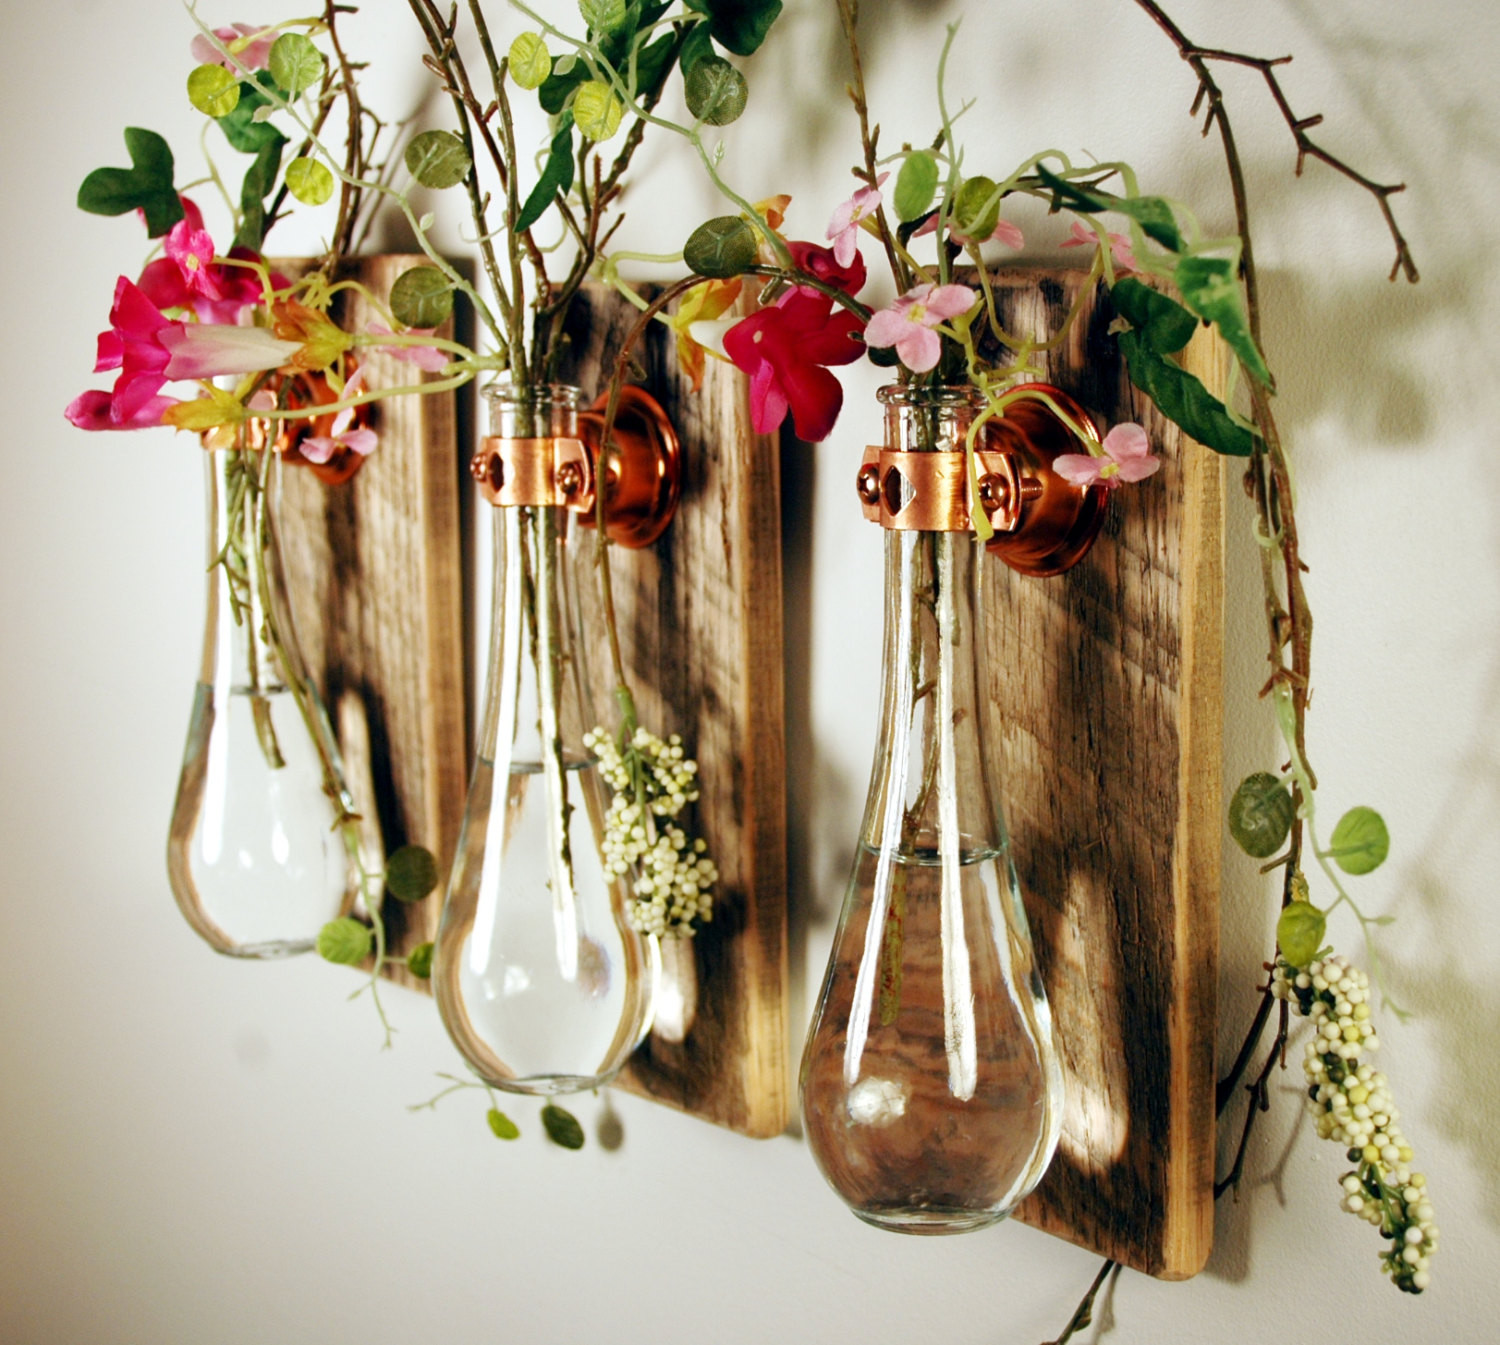 Hanging Bubble Vase Of Vase Wall Decor Wall Decor Ideas Inside Amazing Homemade Glass Bottle Vase Hang On Wooden Wall as Flower